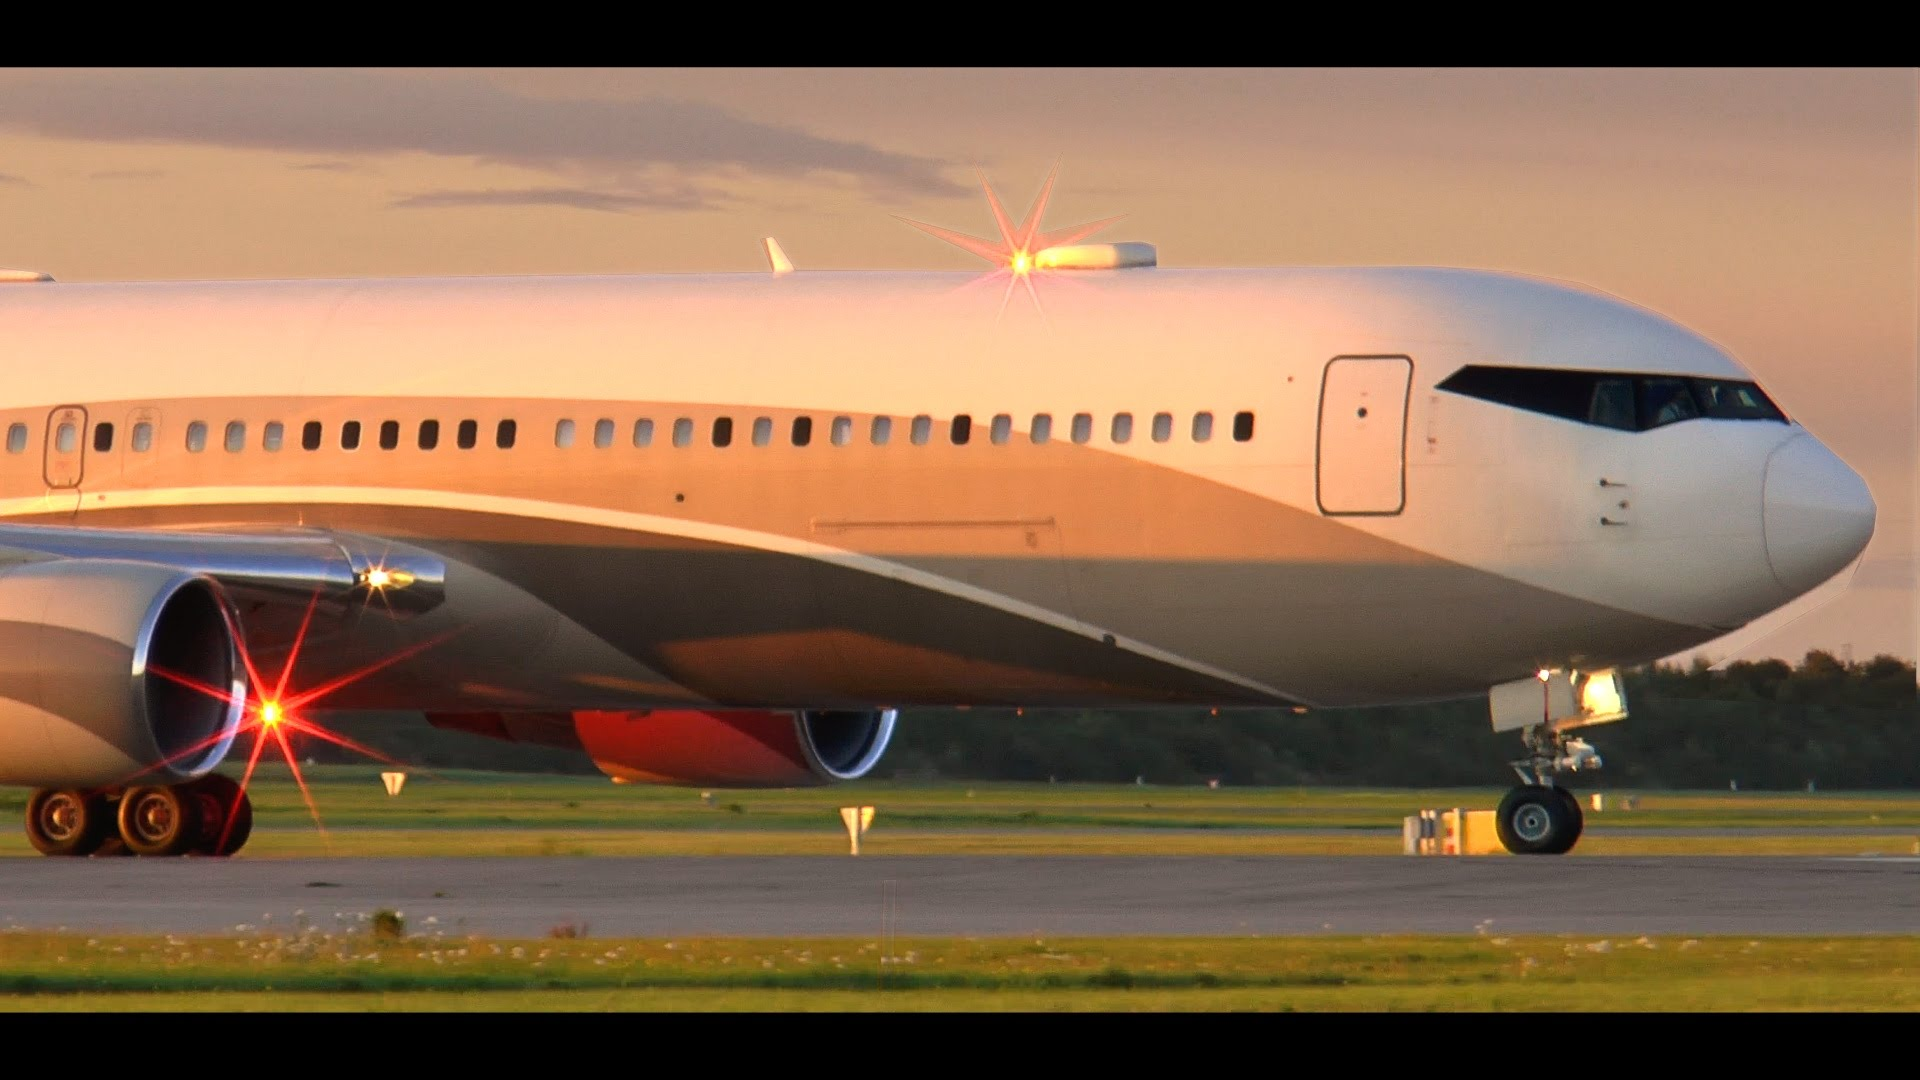 Boeing 767 wallpapers, Vehicles, HQ Boeing 767 pictures | 4K